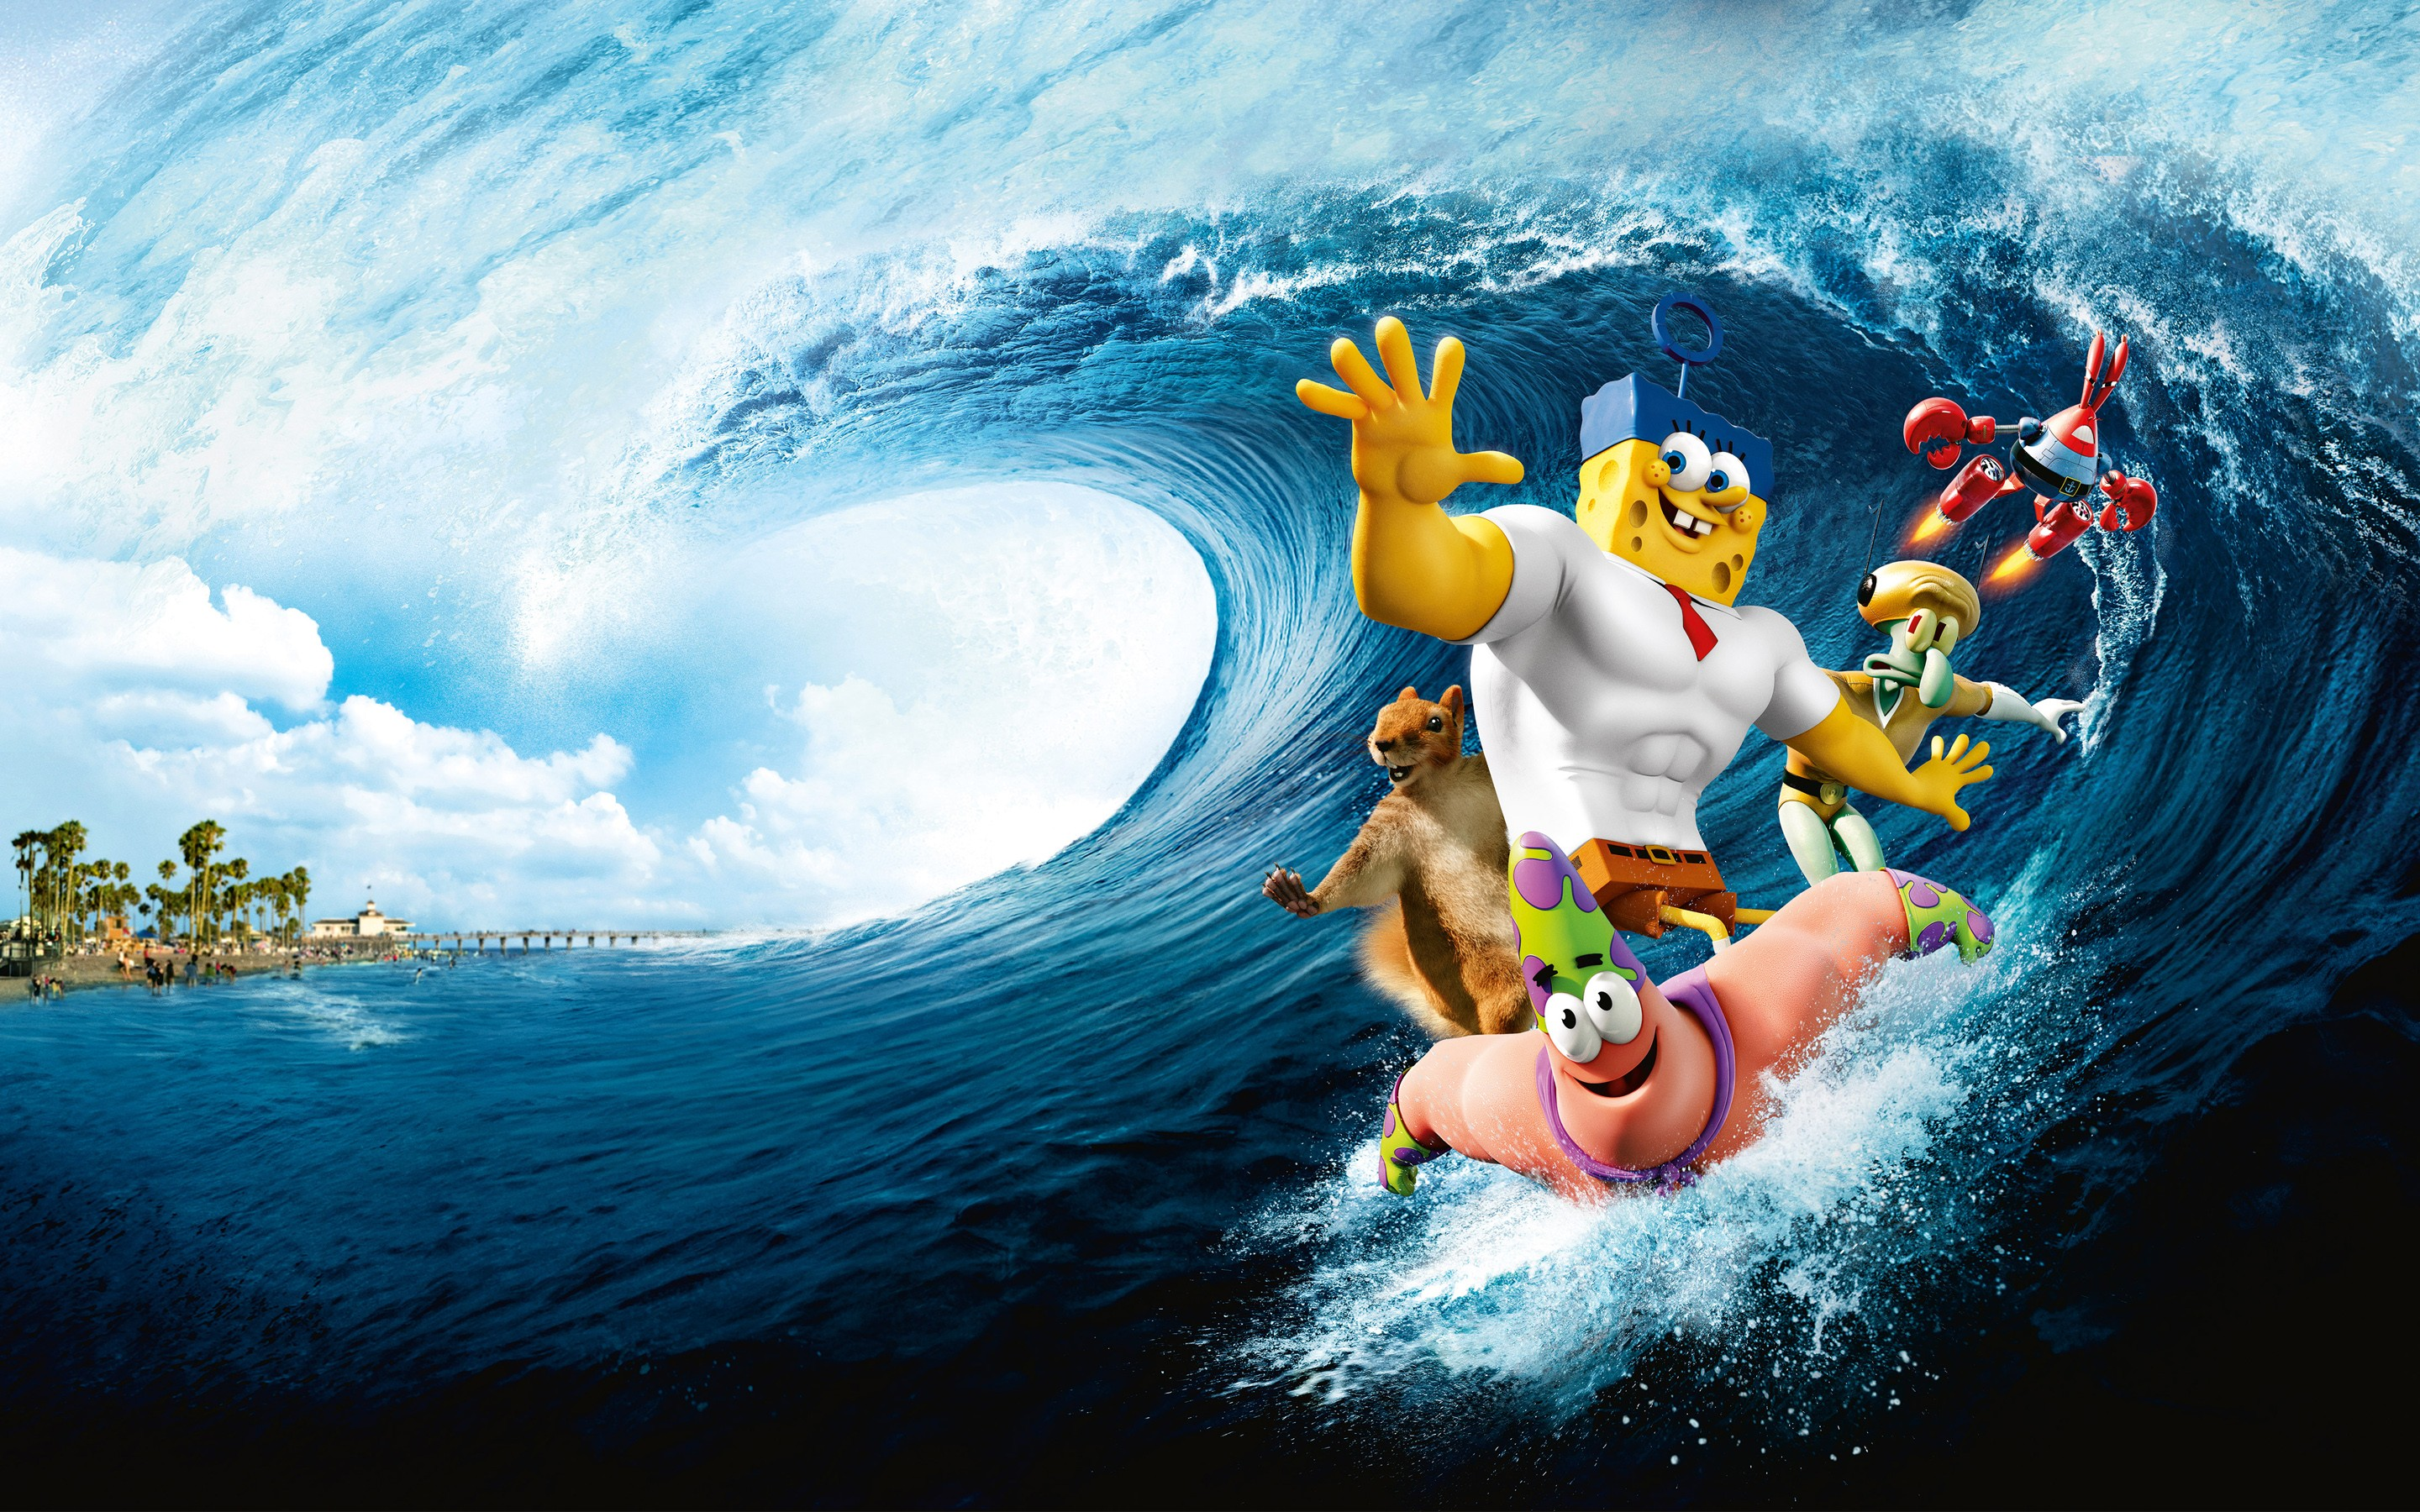 the spongebob movie hd movies 4k wallpapers images